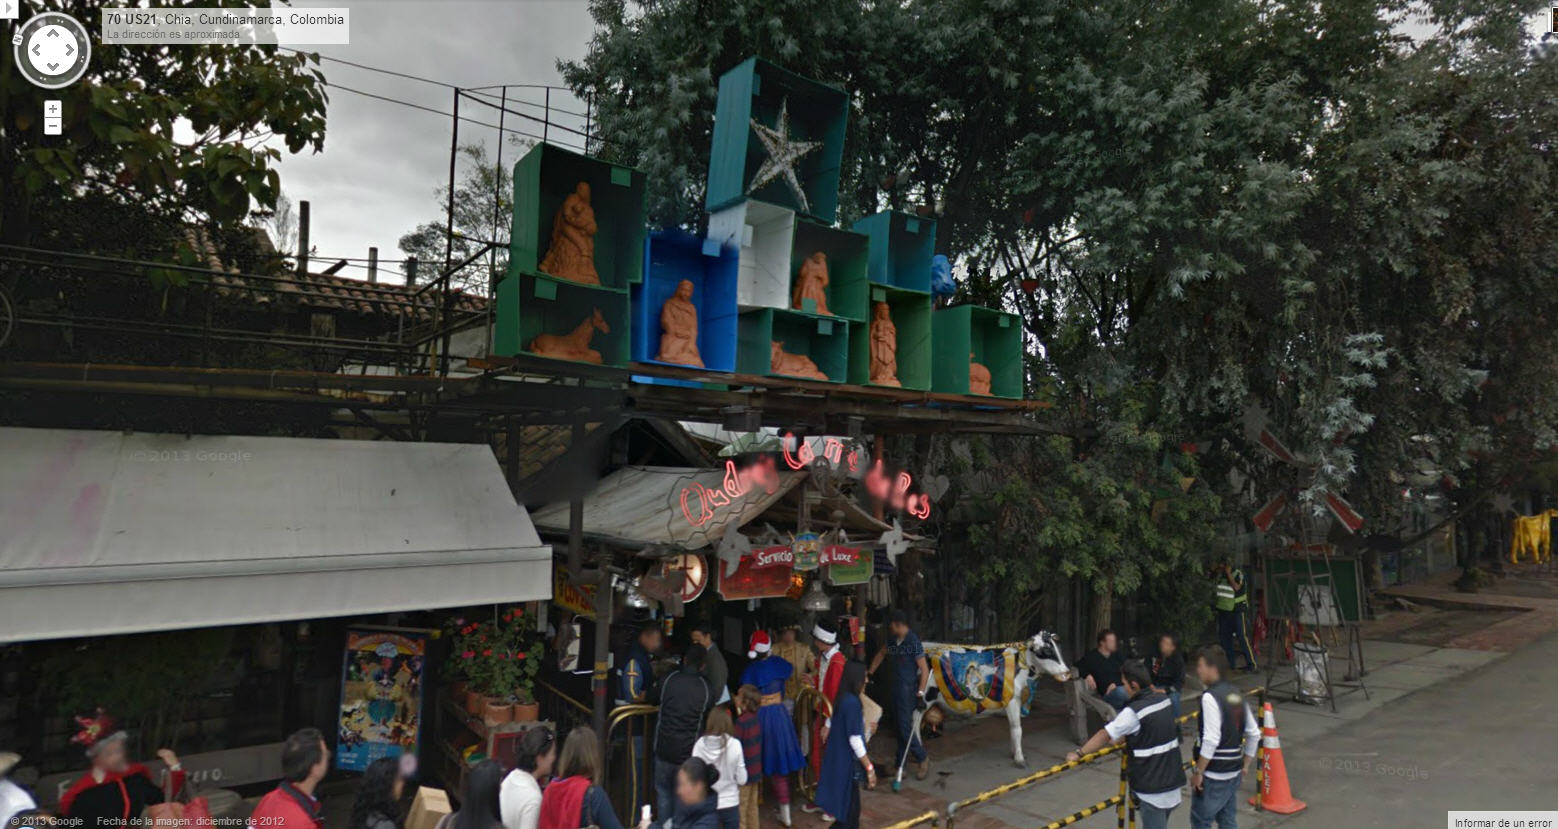 Christmas in Colombia?